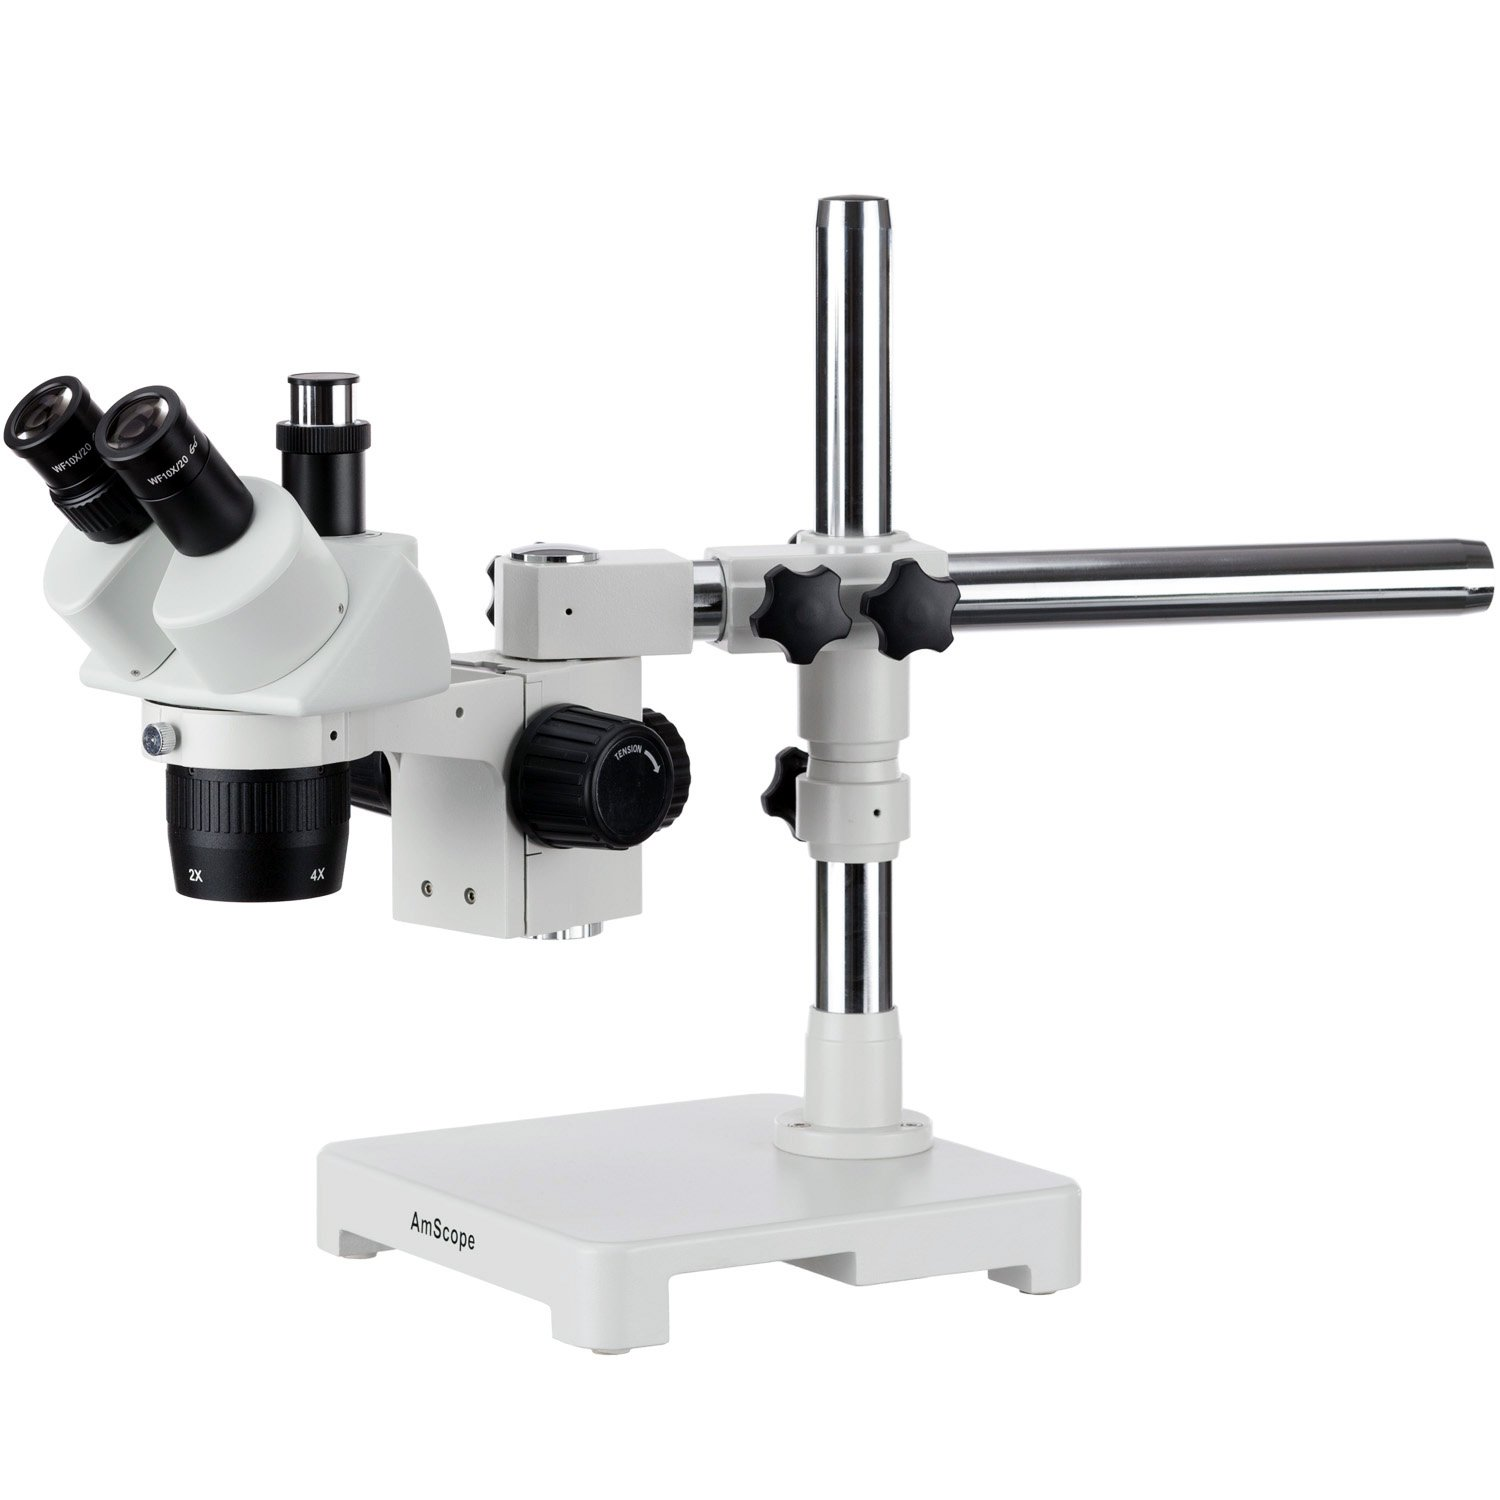 AmScope SW-3T24Z Trinocular Stereo Microscope, WH10x Eyepieces, 20X/40X/80X Magnification, 2X/4X Objective, Single-Arm Boom Stand, Includes 2.0x Barlow Lens by AmScope